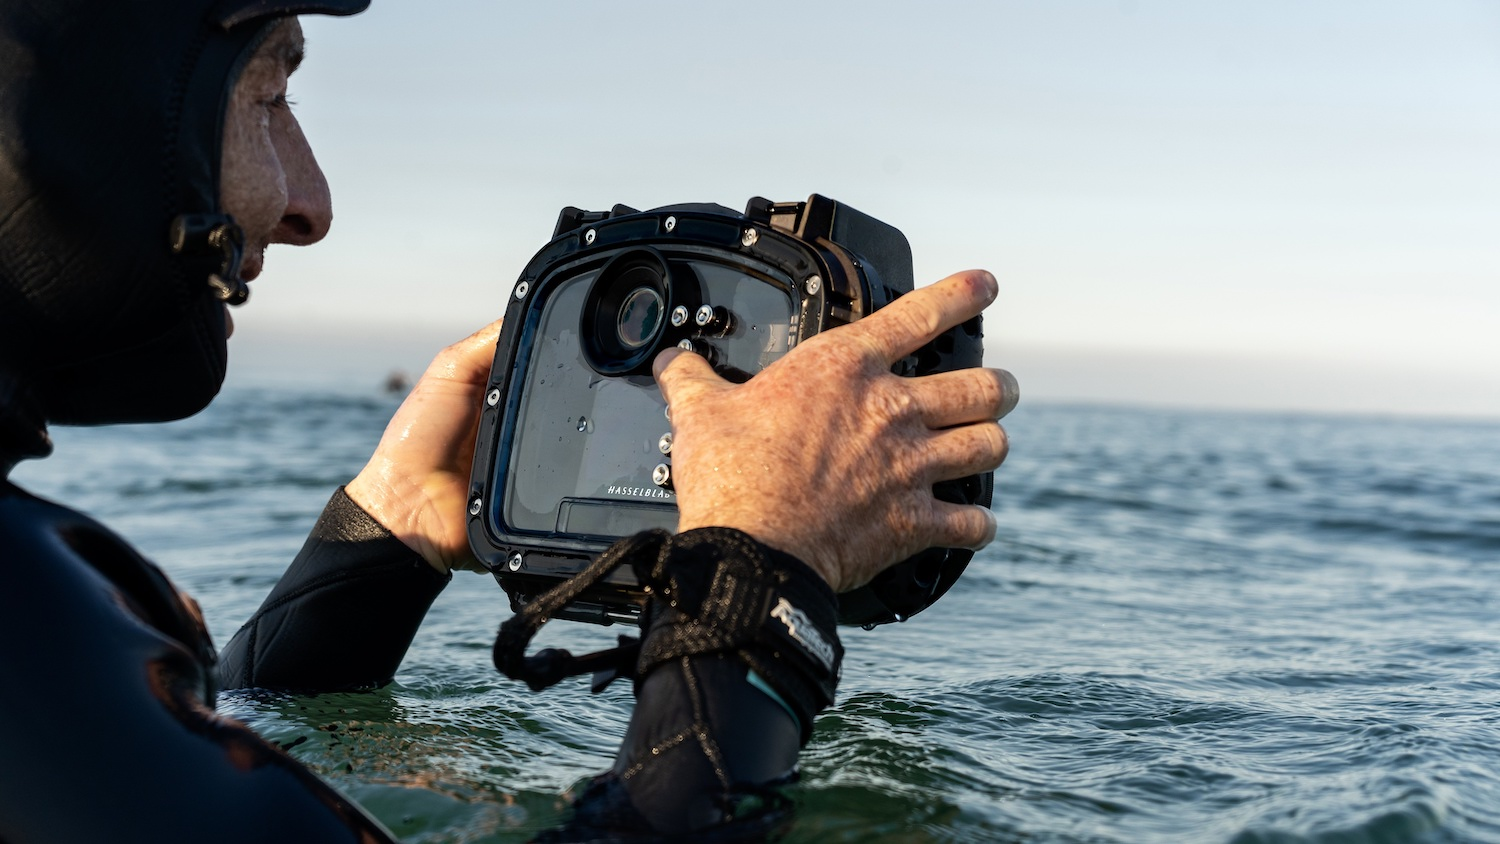 Hasselblad Launches A New Underwater Housing Solution From Aquatech For The X1D II 50C